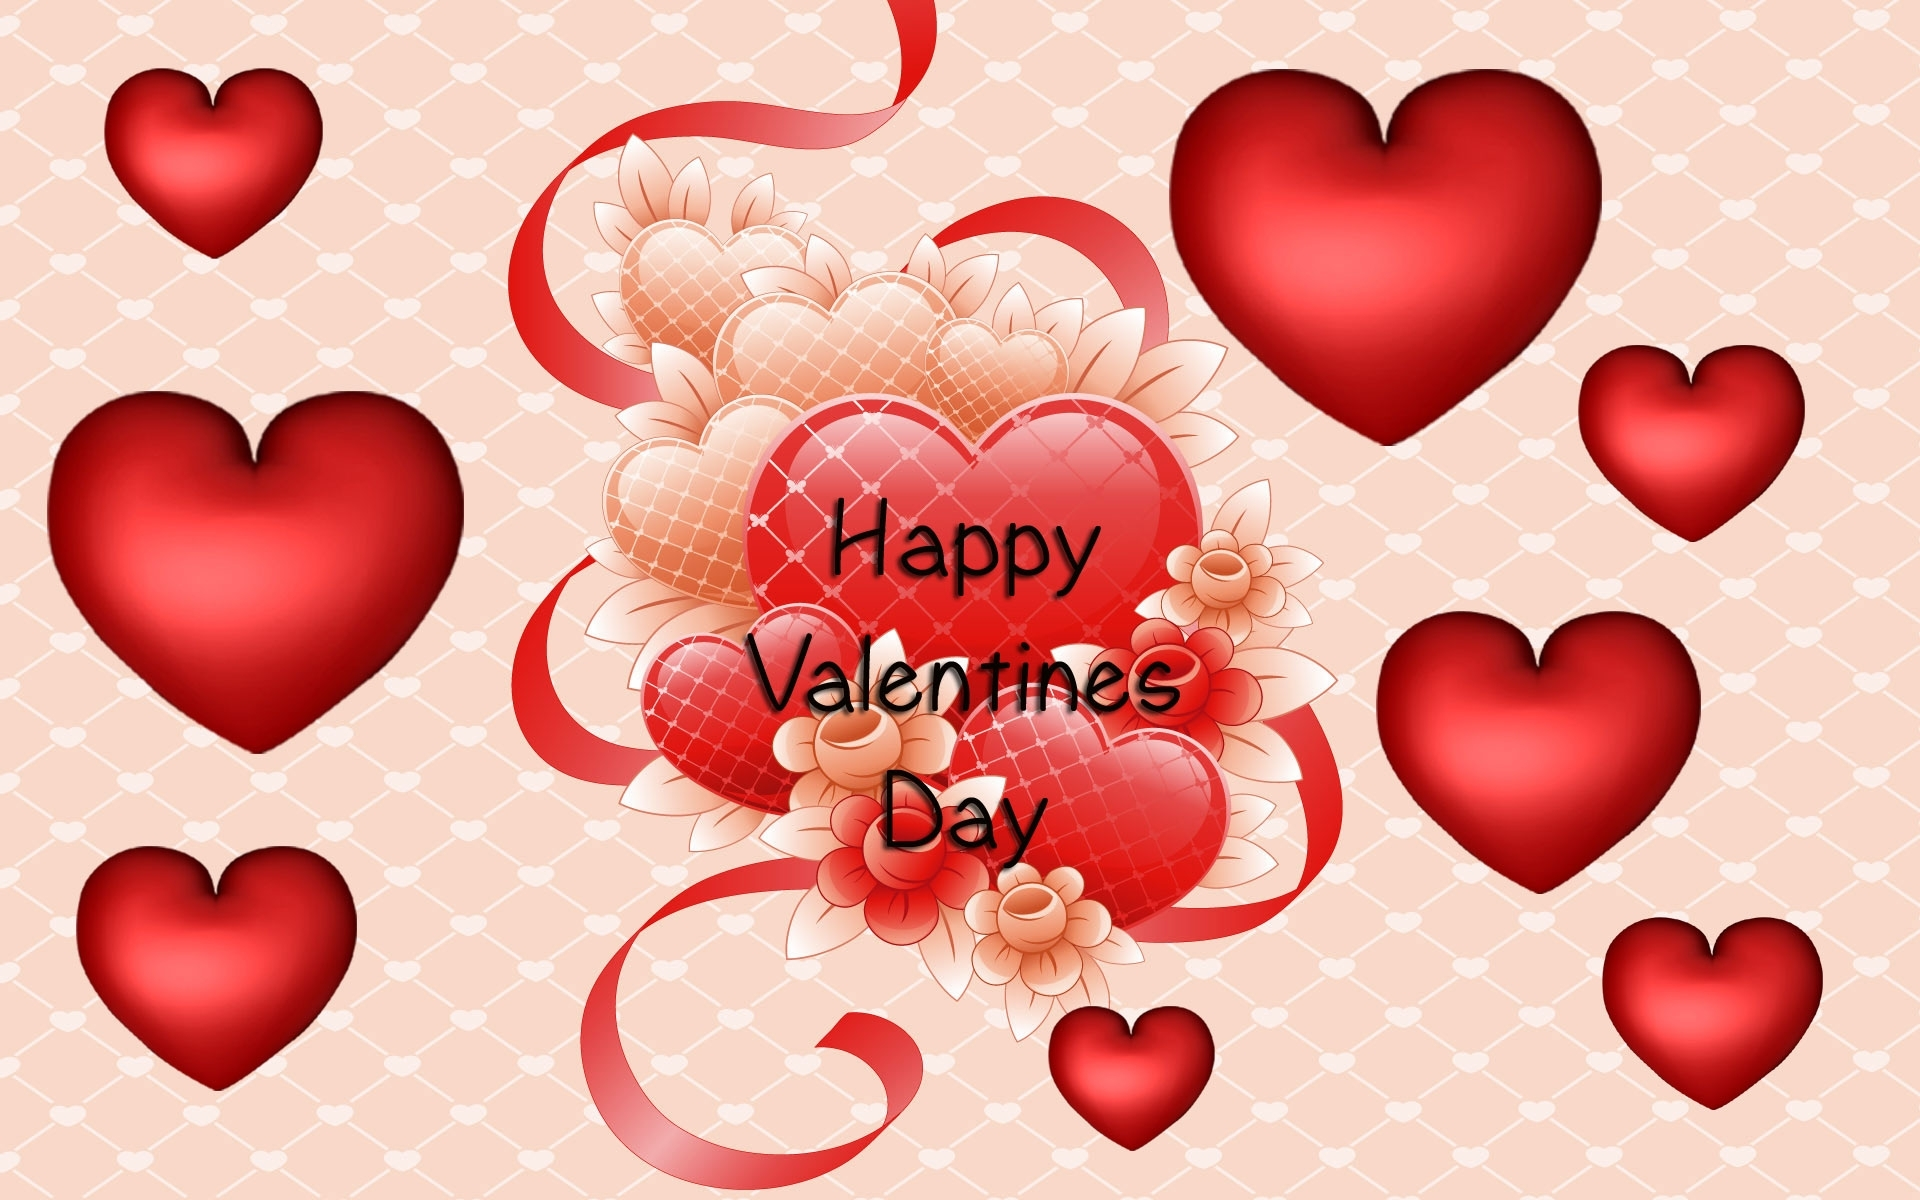 free download valentine wallpaper for desktop. - media file